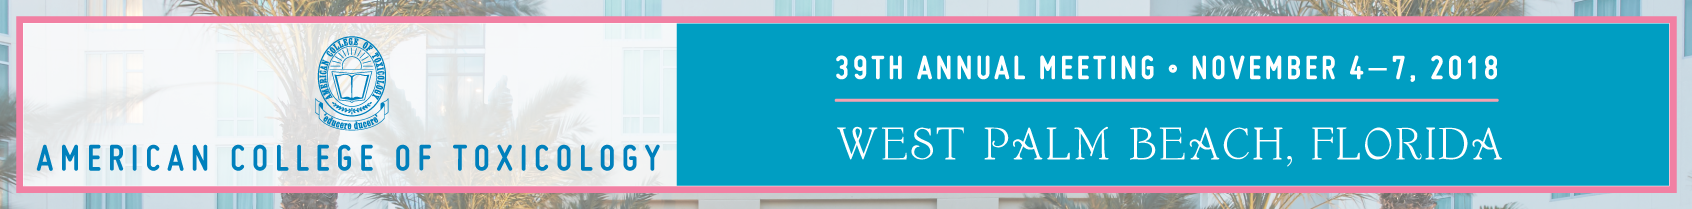 ACT 39th Annual Meeting - November 4-7, 2018 - West Palm Beach, Florida